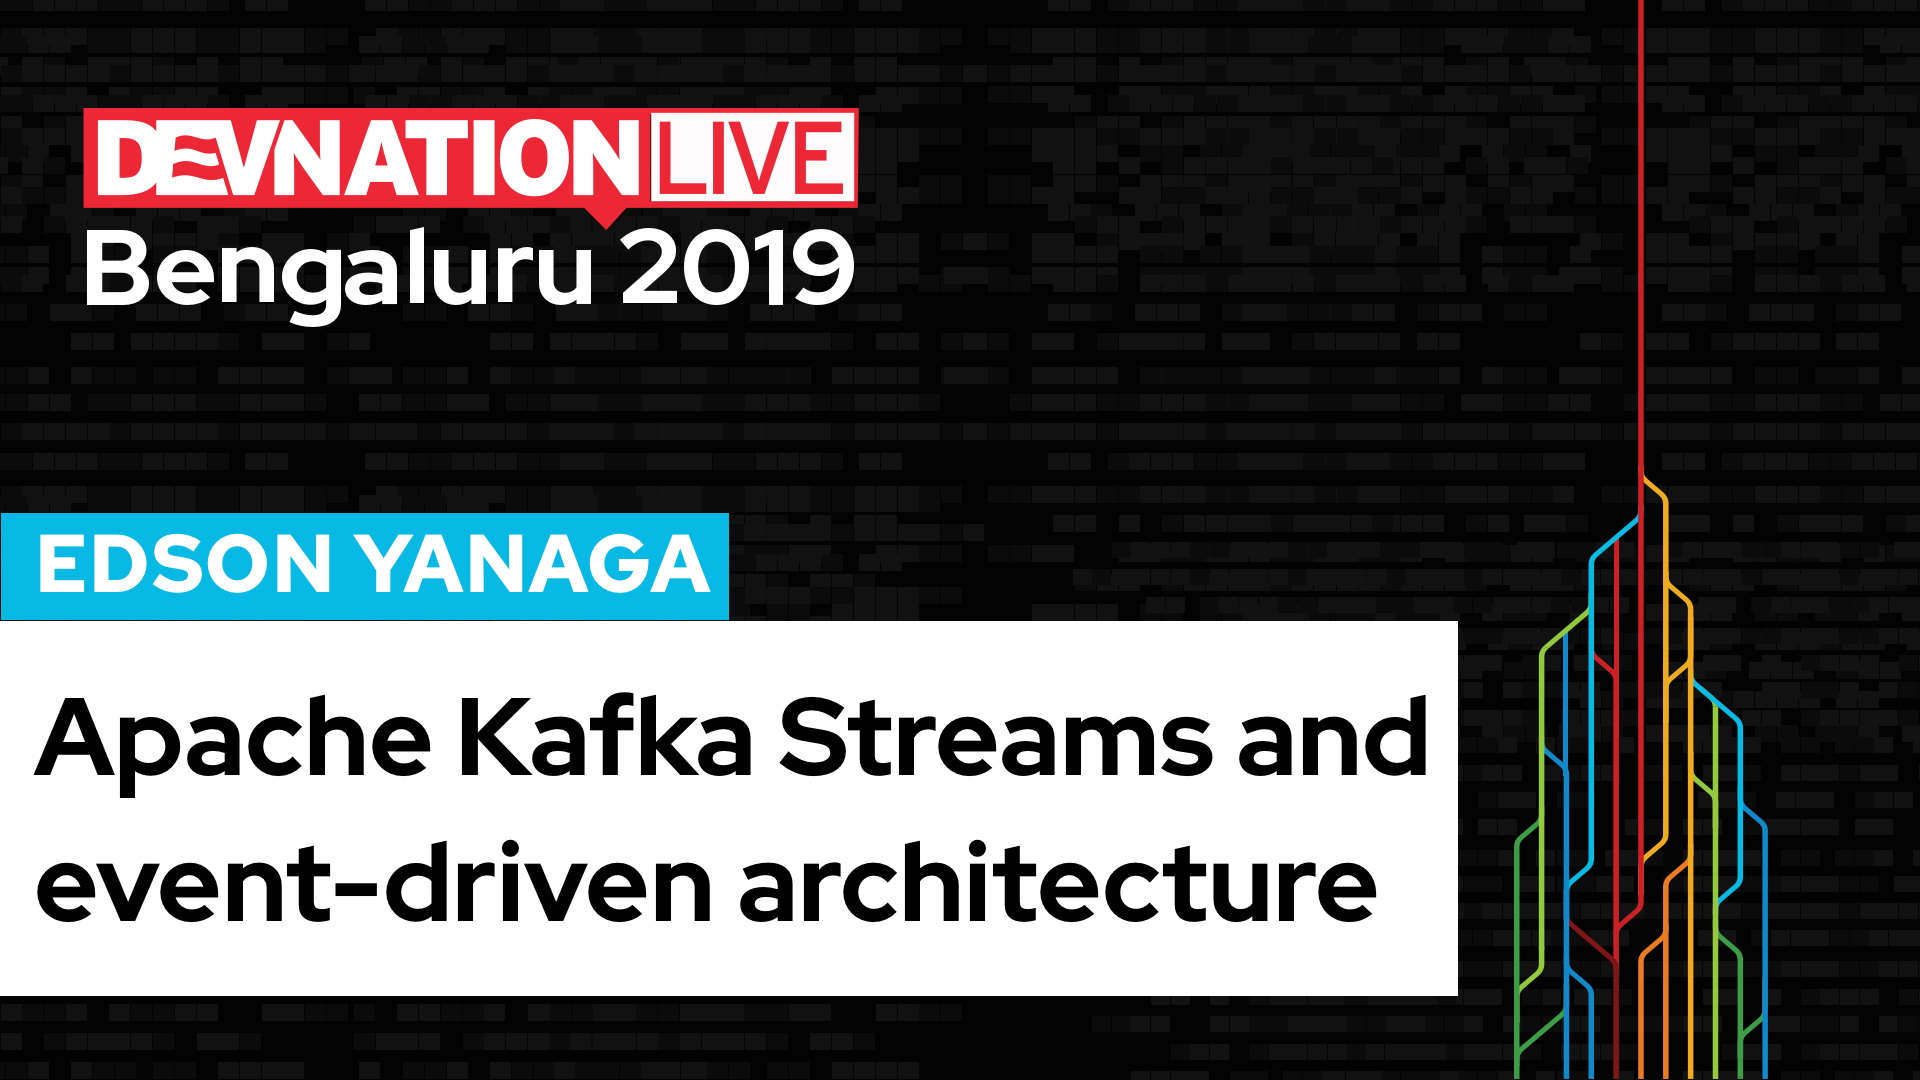 DevNation Live Bengaluru: Apache Kafka Streams and event-driven architecture